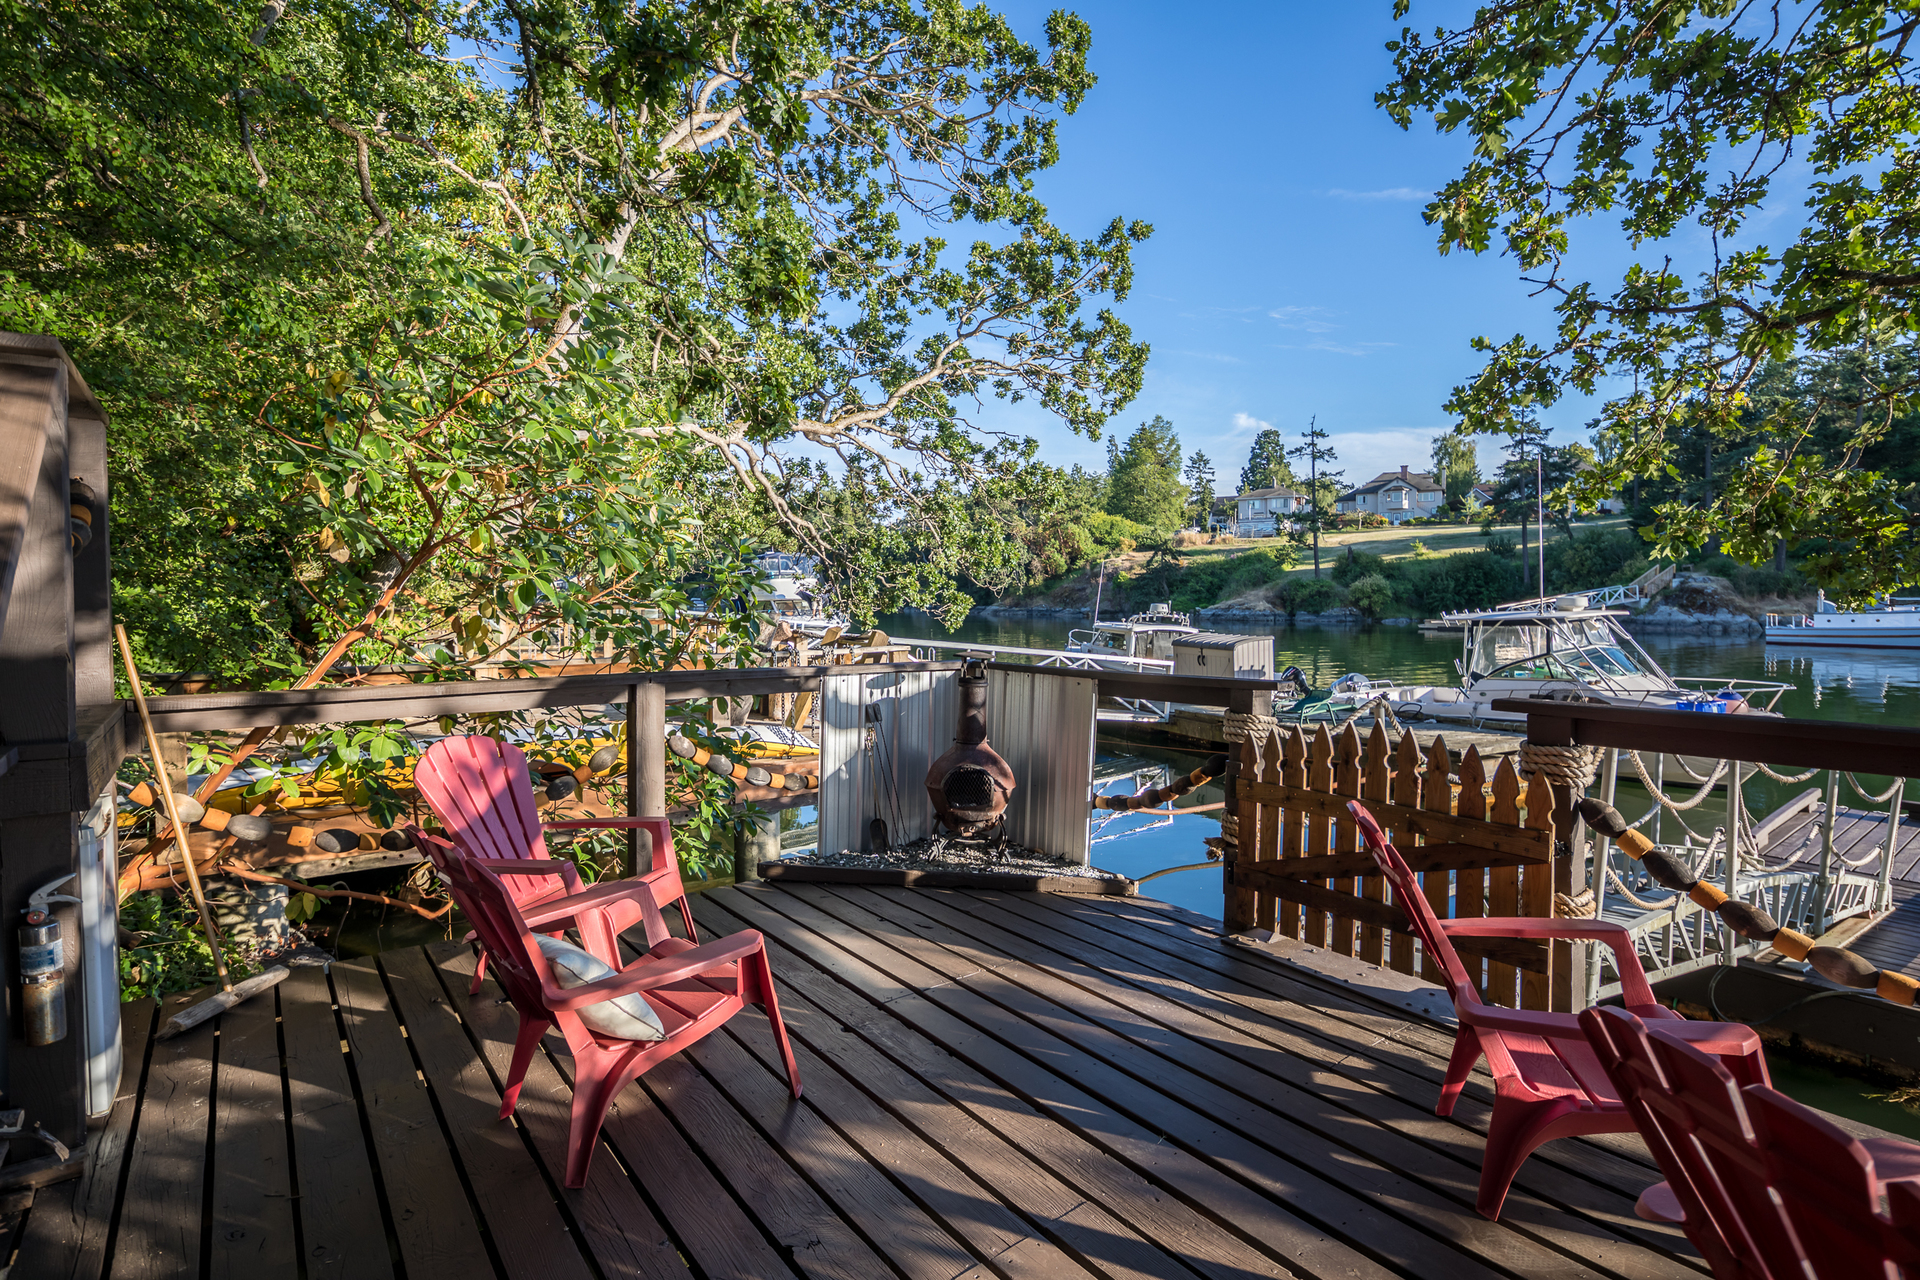 Easy access to Victoria's Harbour from your own dock and moorage at 17 Lotus Street, Burnside, Victoria